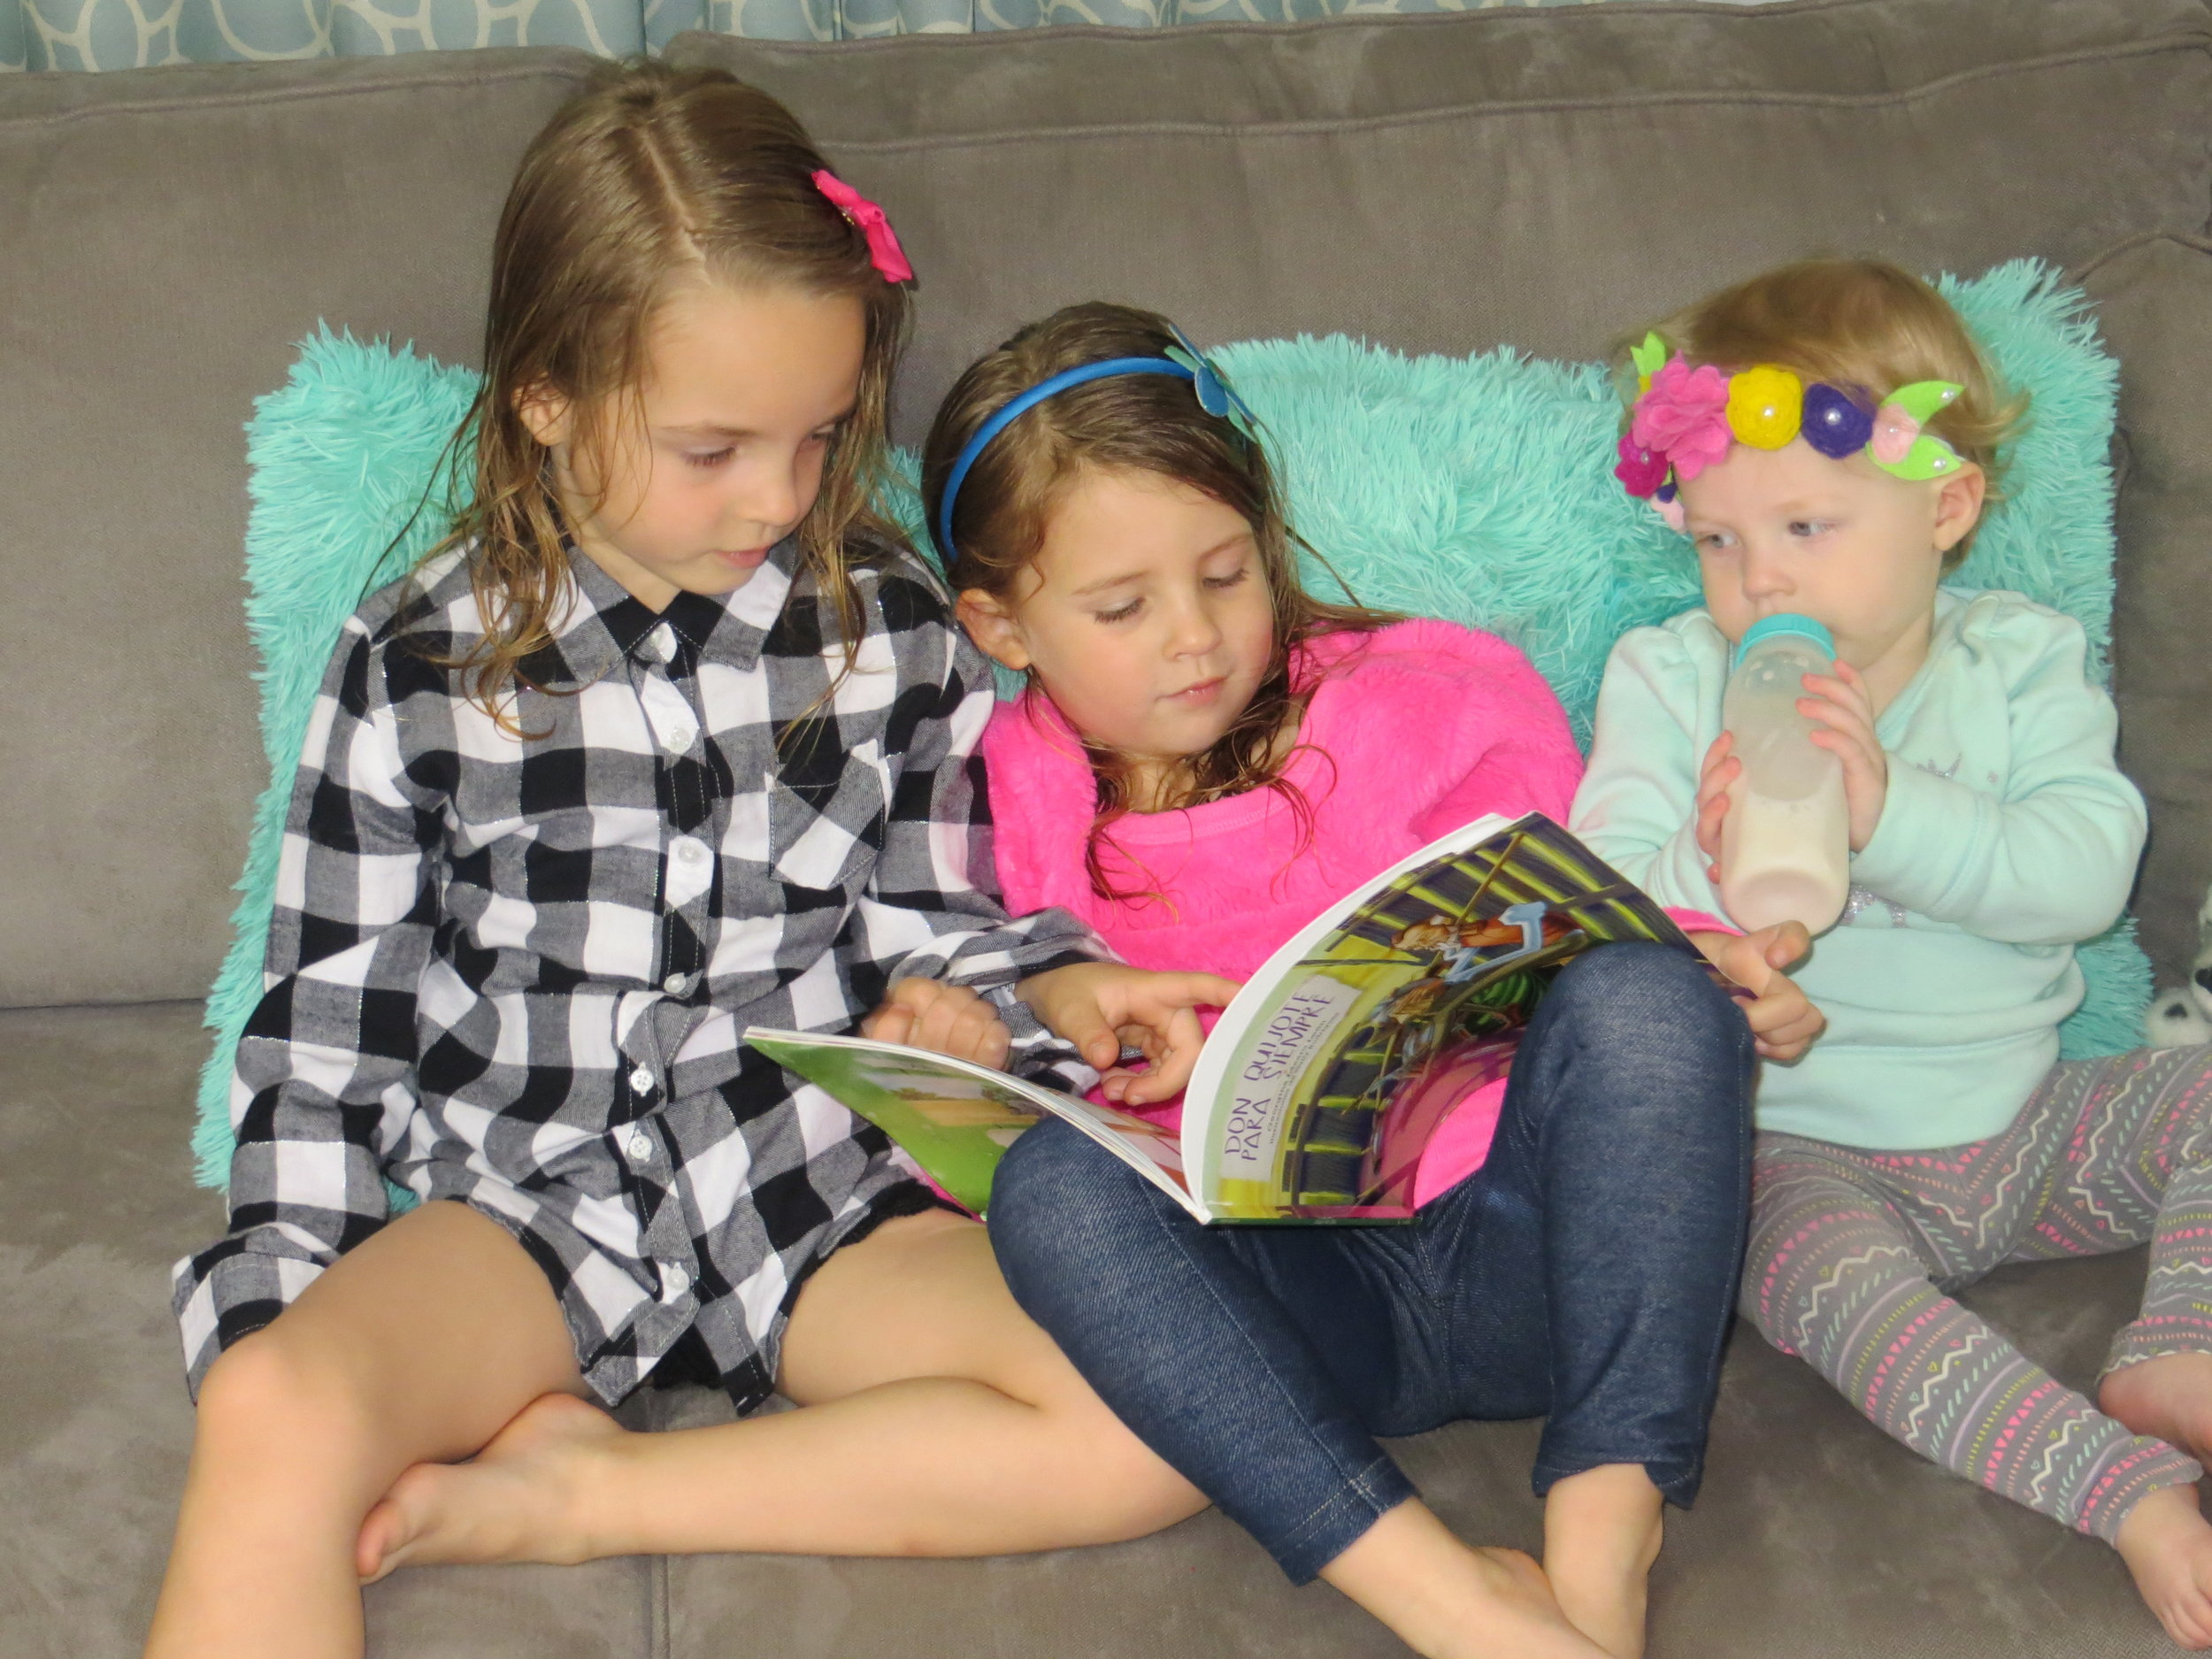 Children love reading stories over and over again and when they know a story well, they can retell it themselves!